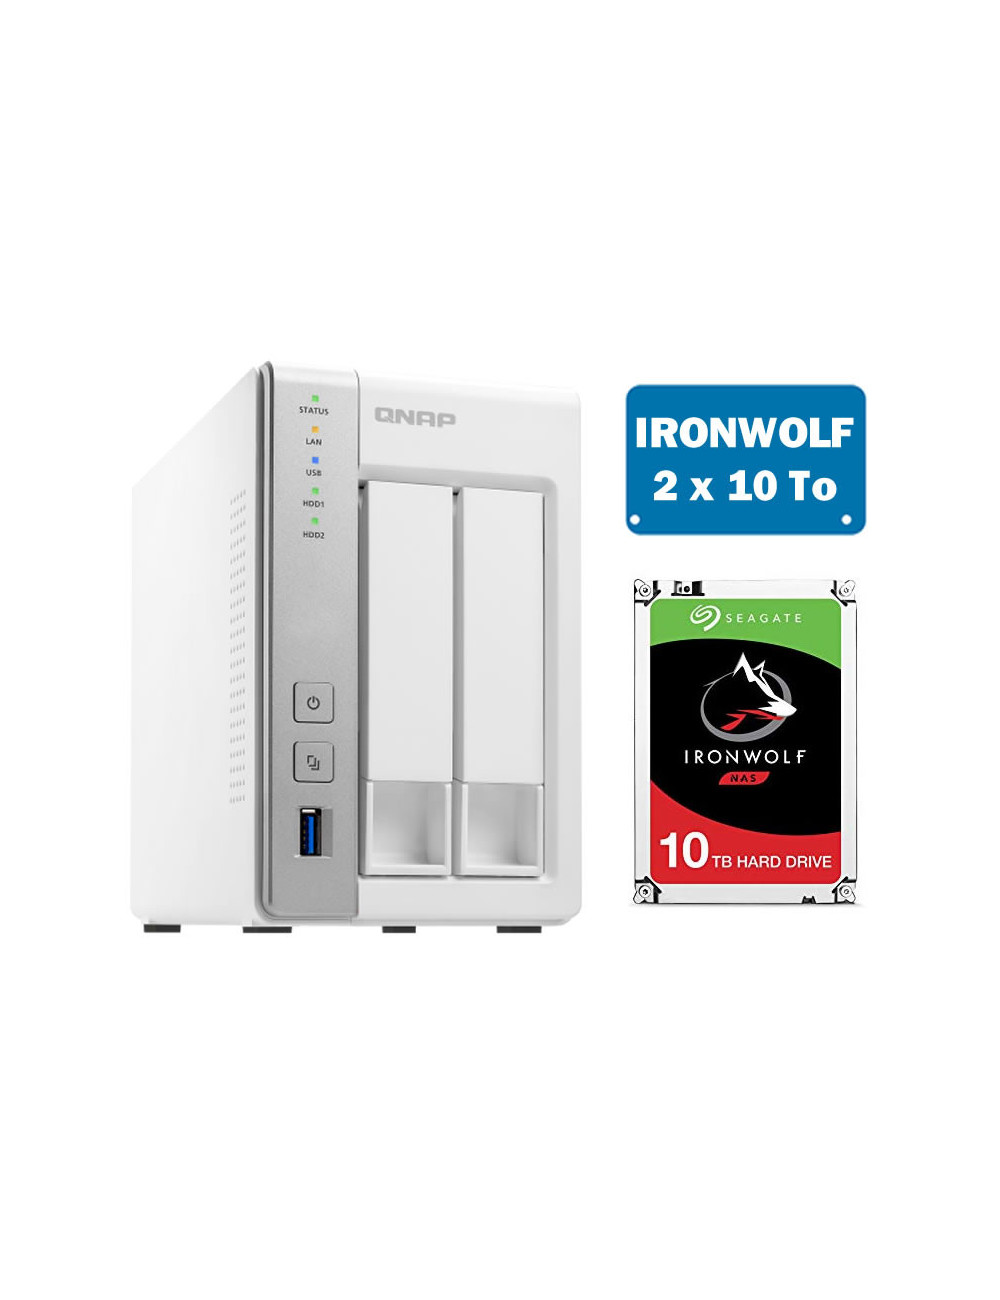 QNAP TS-231P Serveur NAS IRONWOLF 20 To